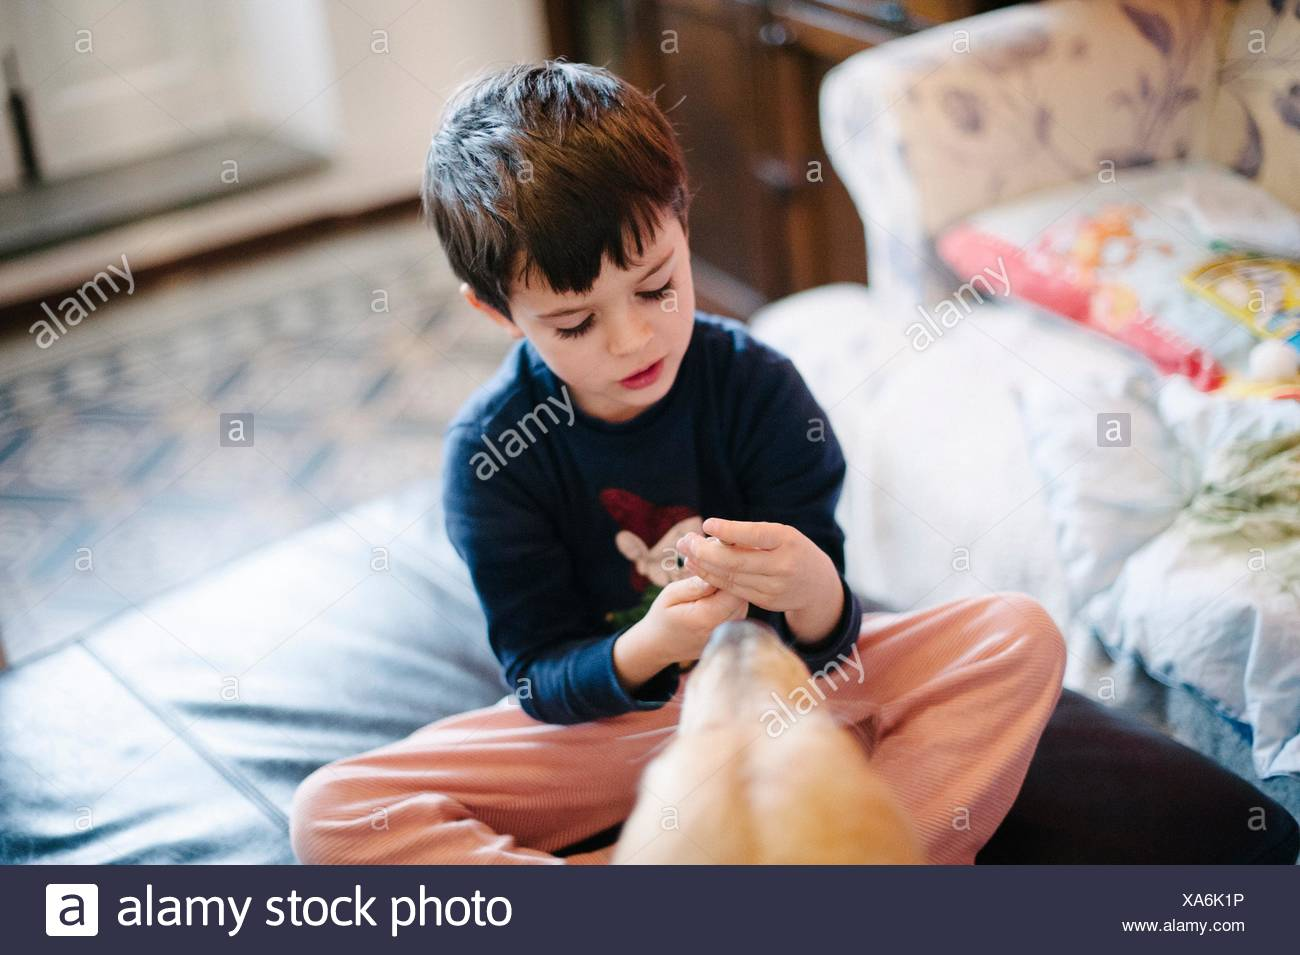 Child plays sitting on poof, dog near - Stock Image